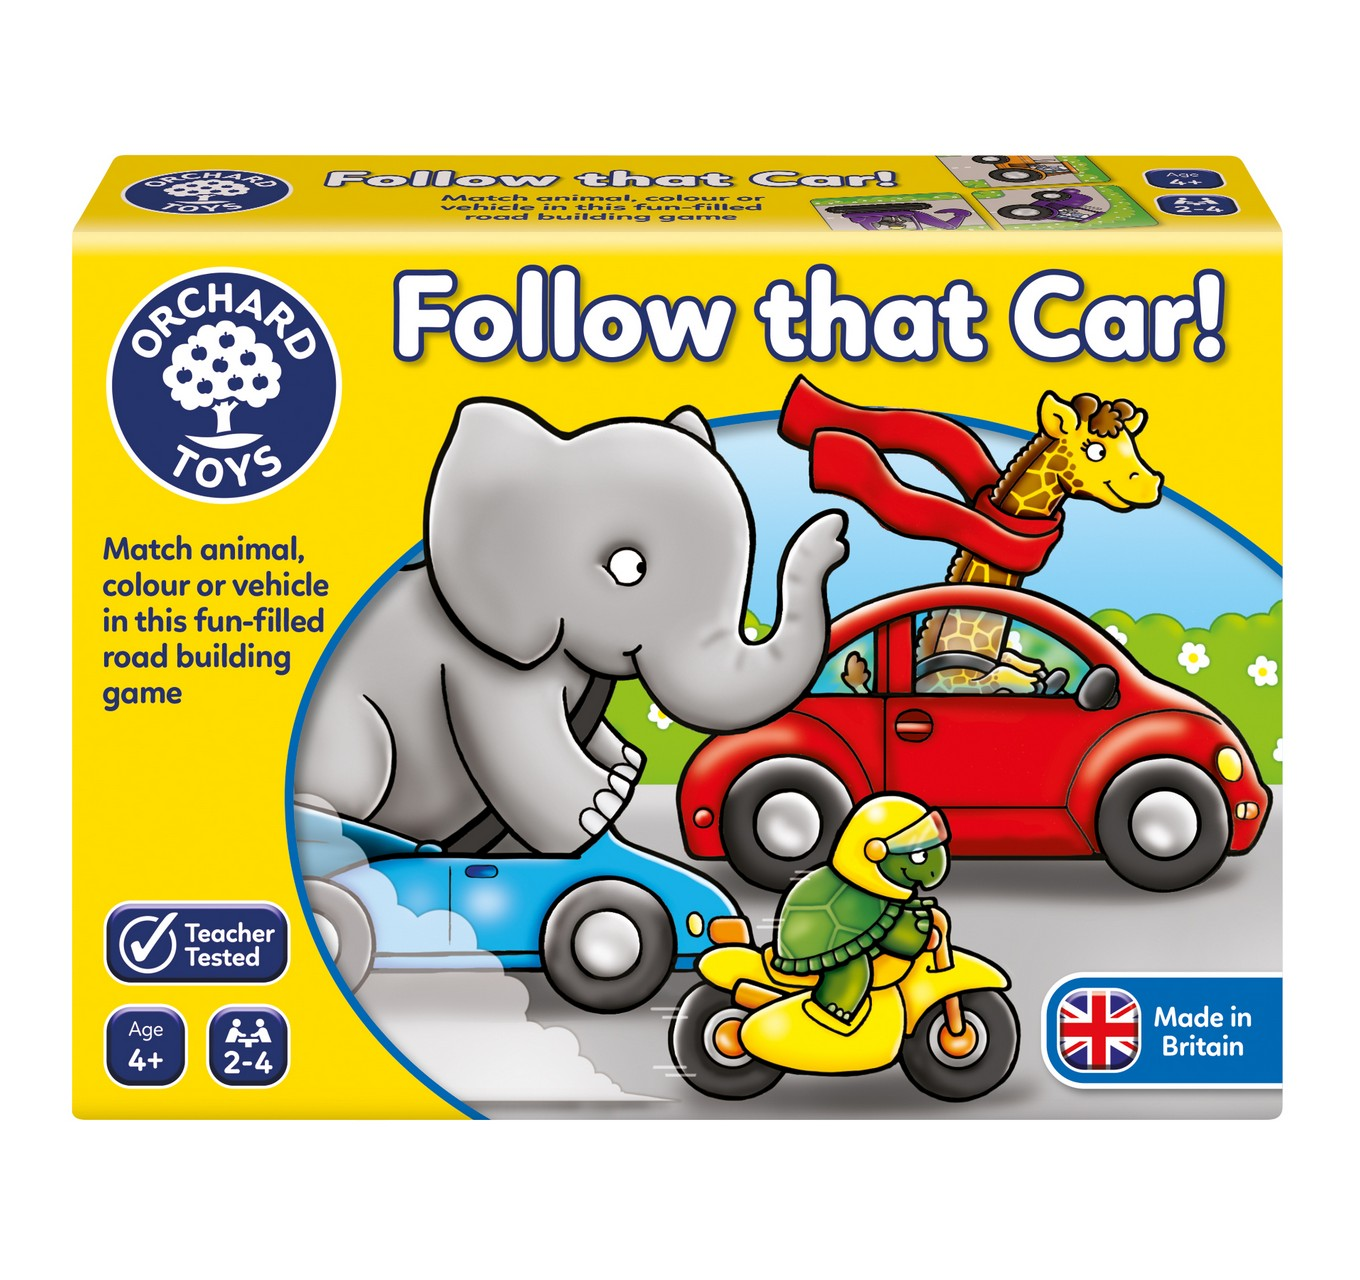 Follow that Car! Game